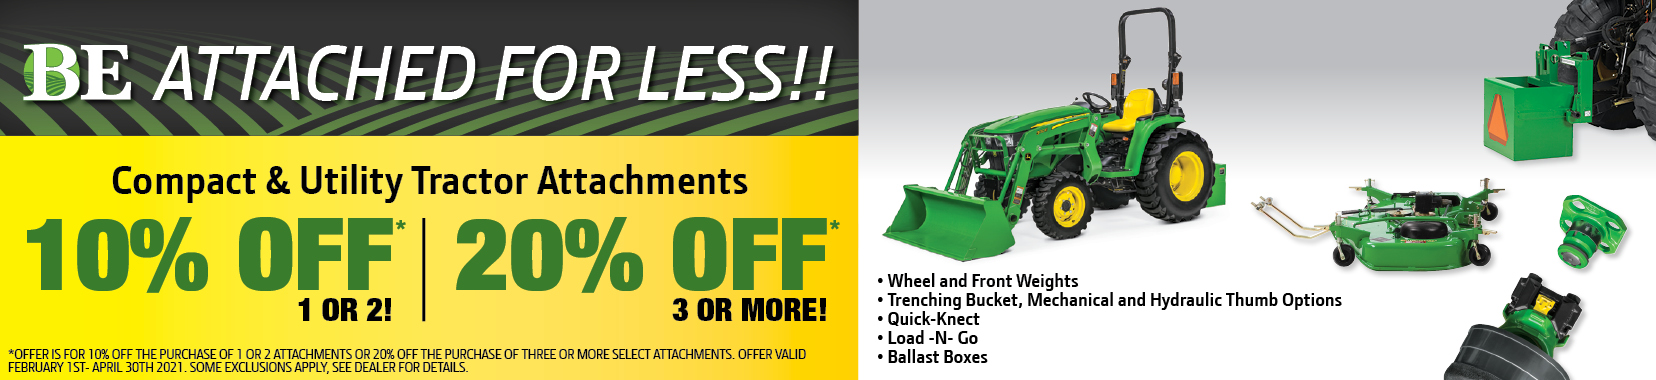 BE Attached for less! OFF on Compact & Utility Tractor Attachments